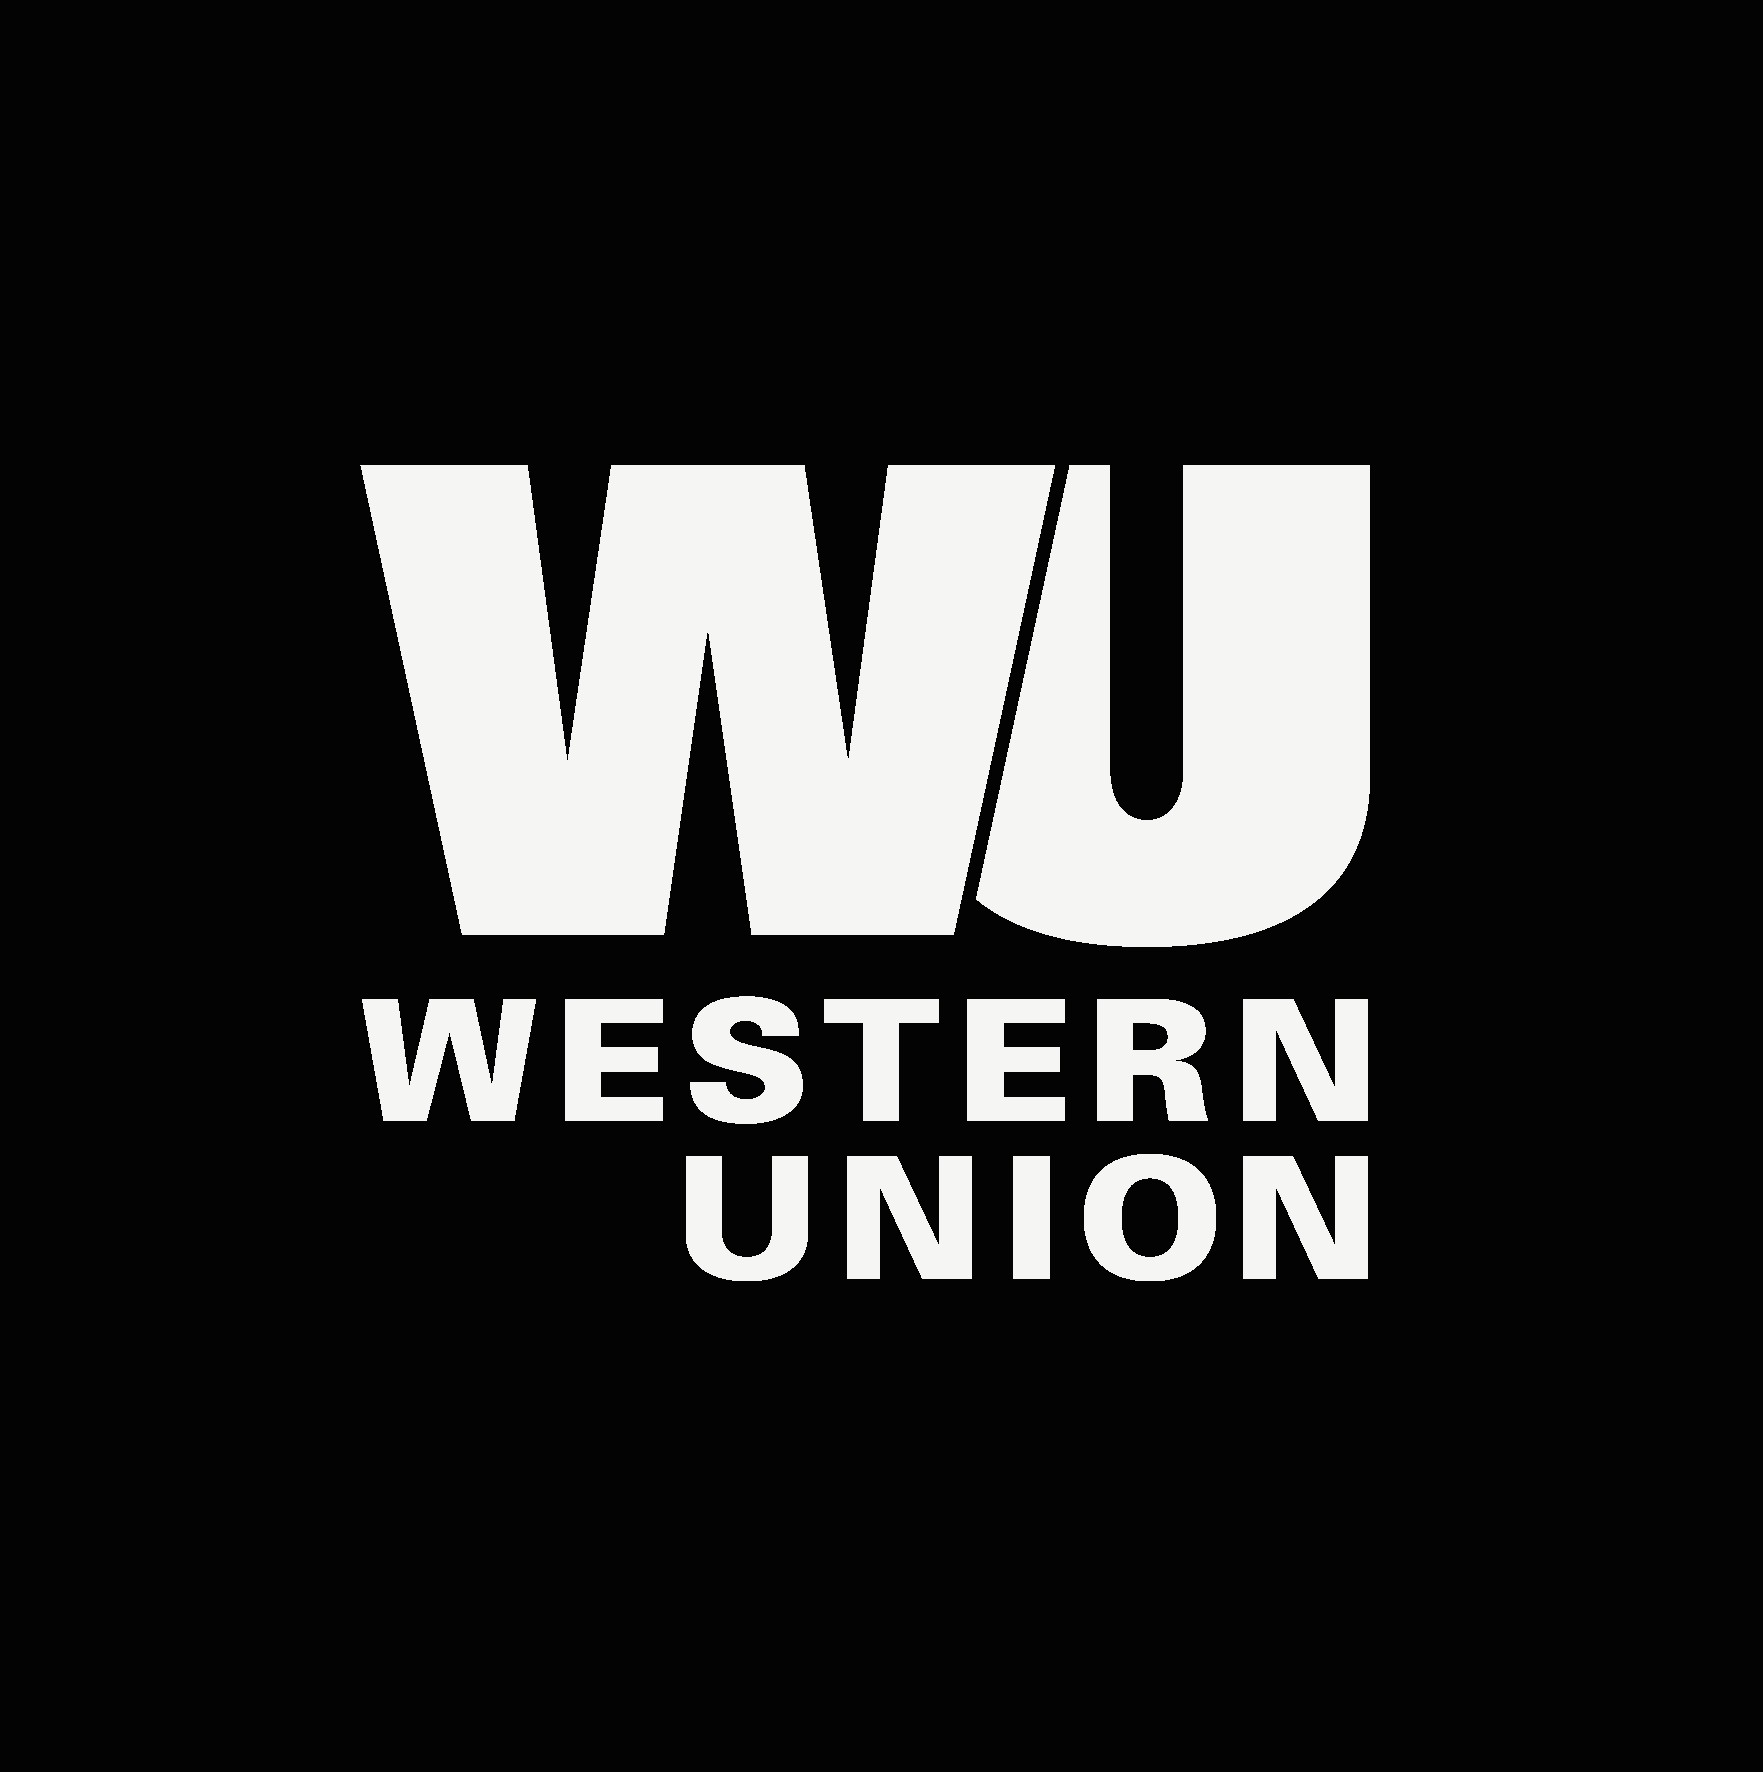 Western Union Badge White price--$0